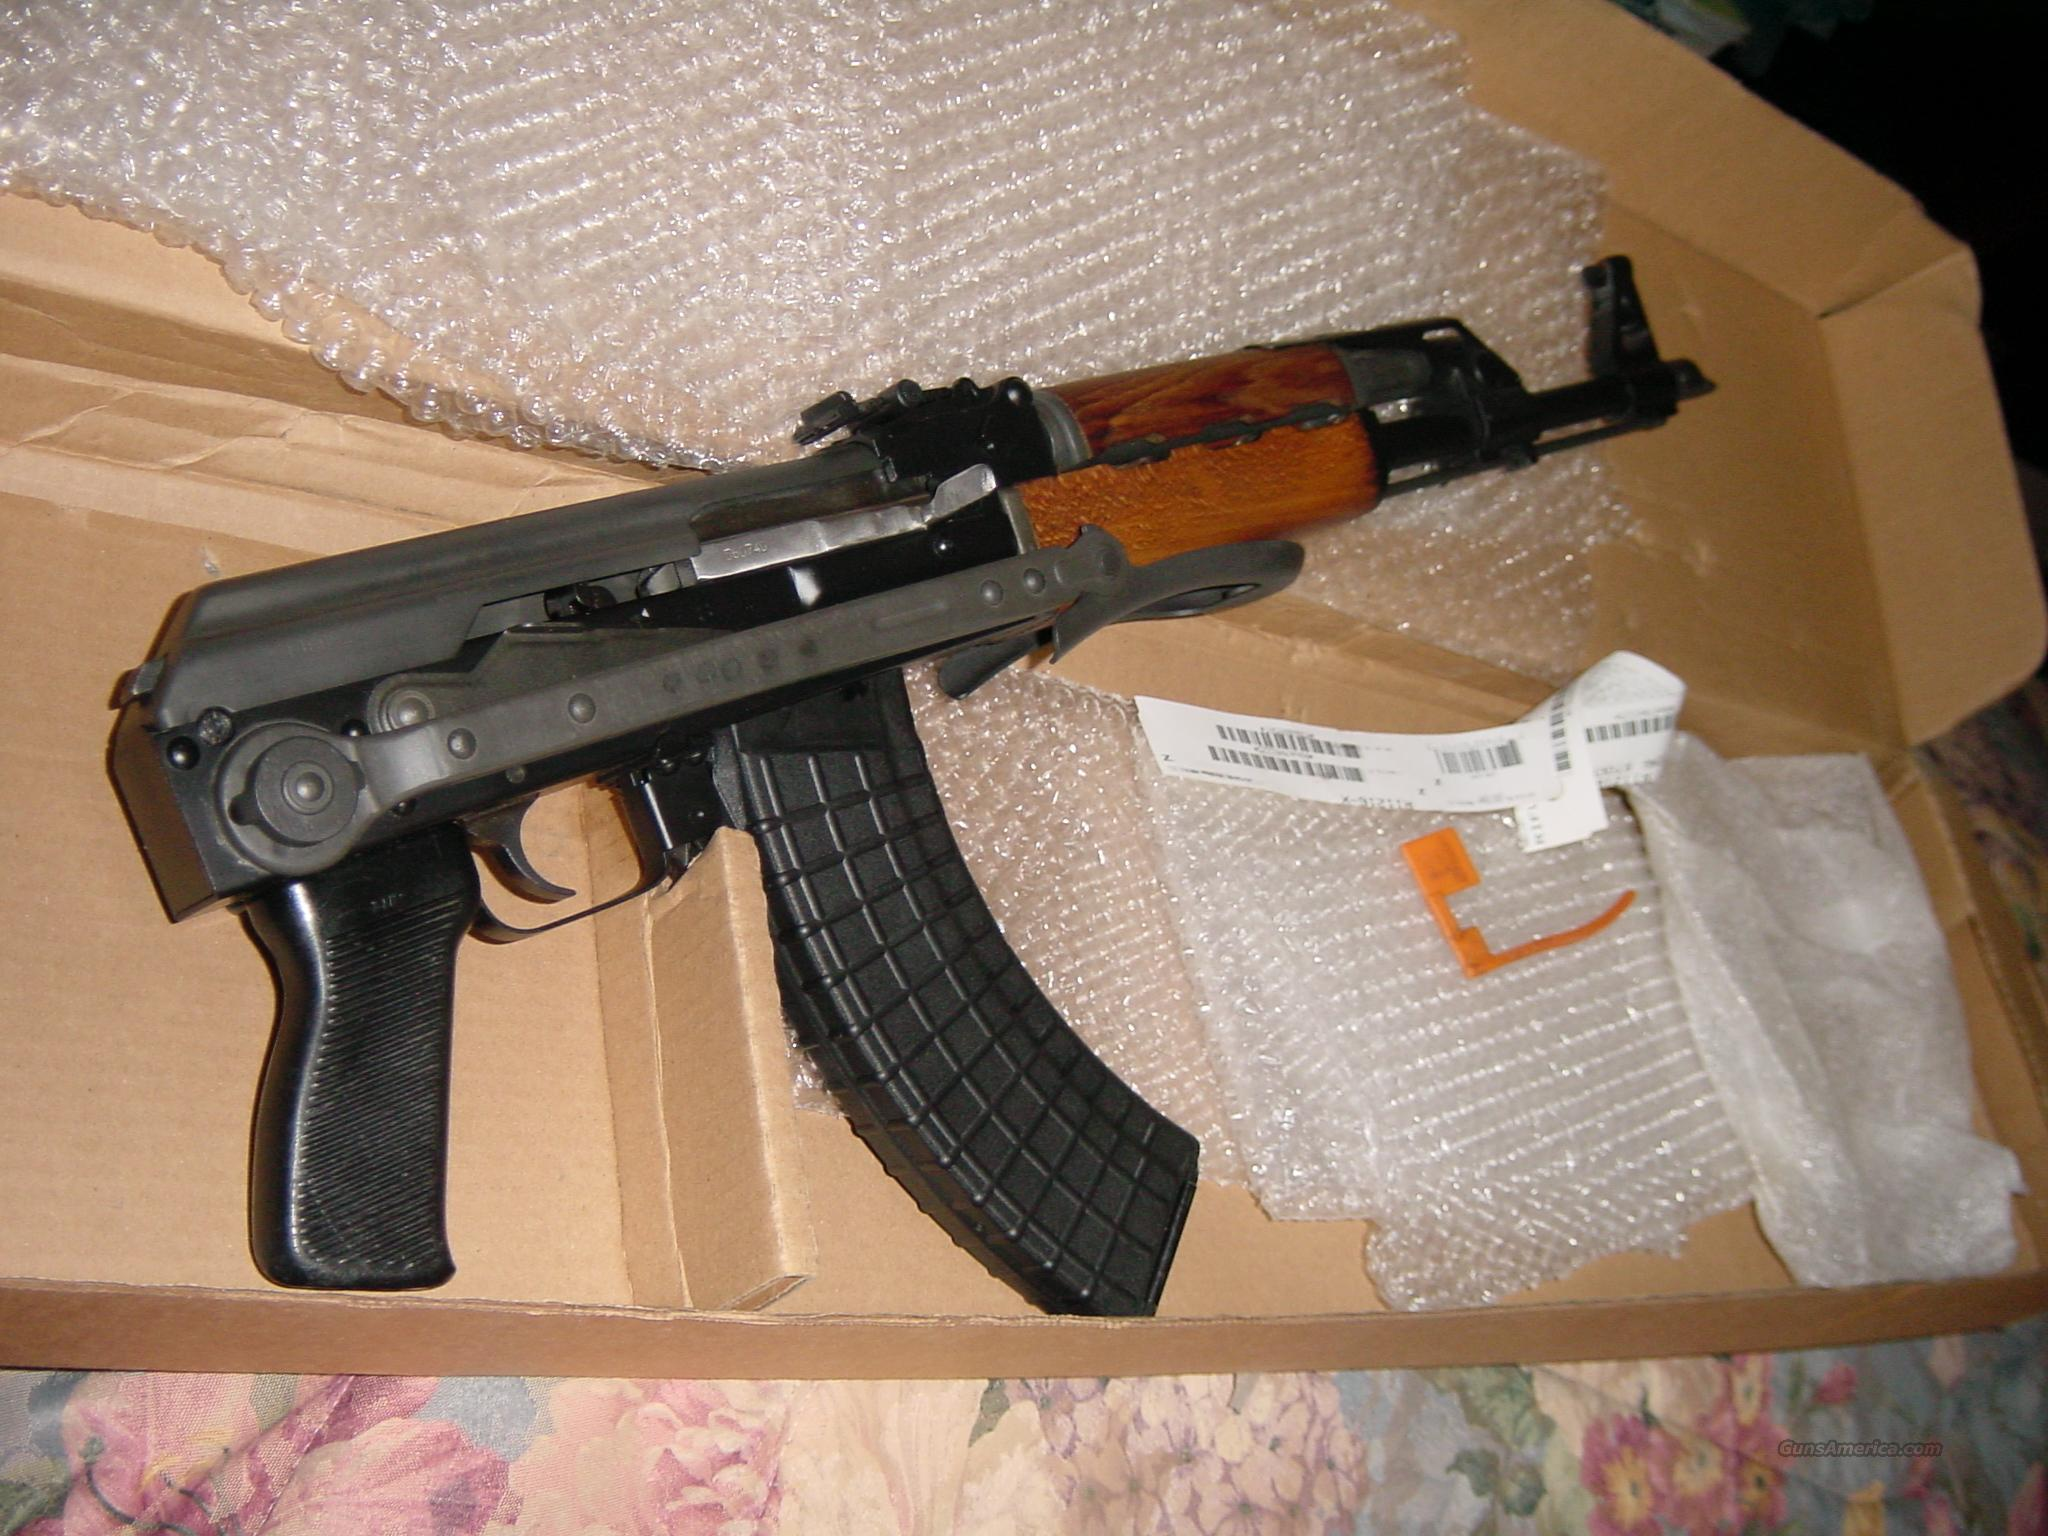 AK-47 yugoslavian (Zastava) by Century Arms  Guns > Rifles > AK-47 Rifles (and copies) > Folding Stock